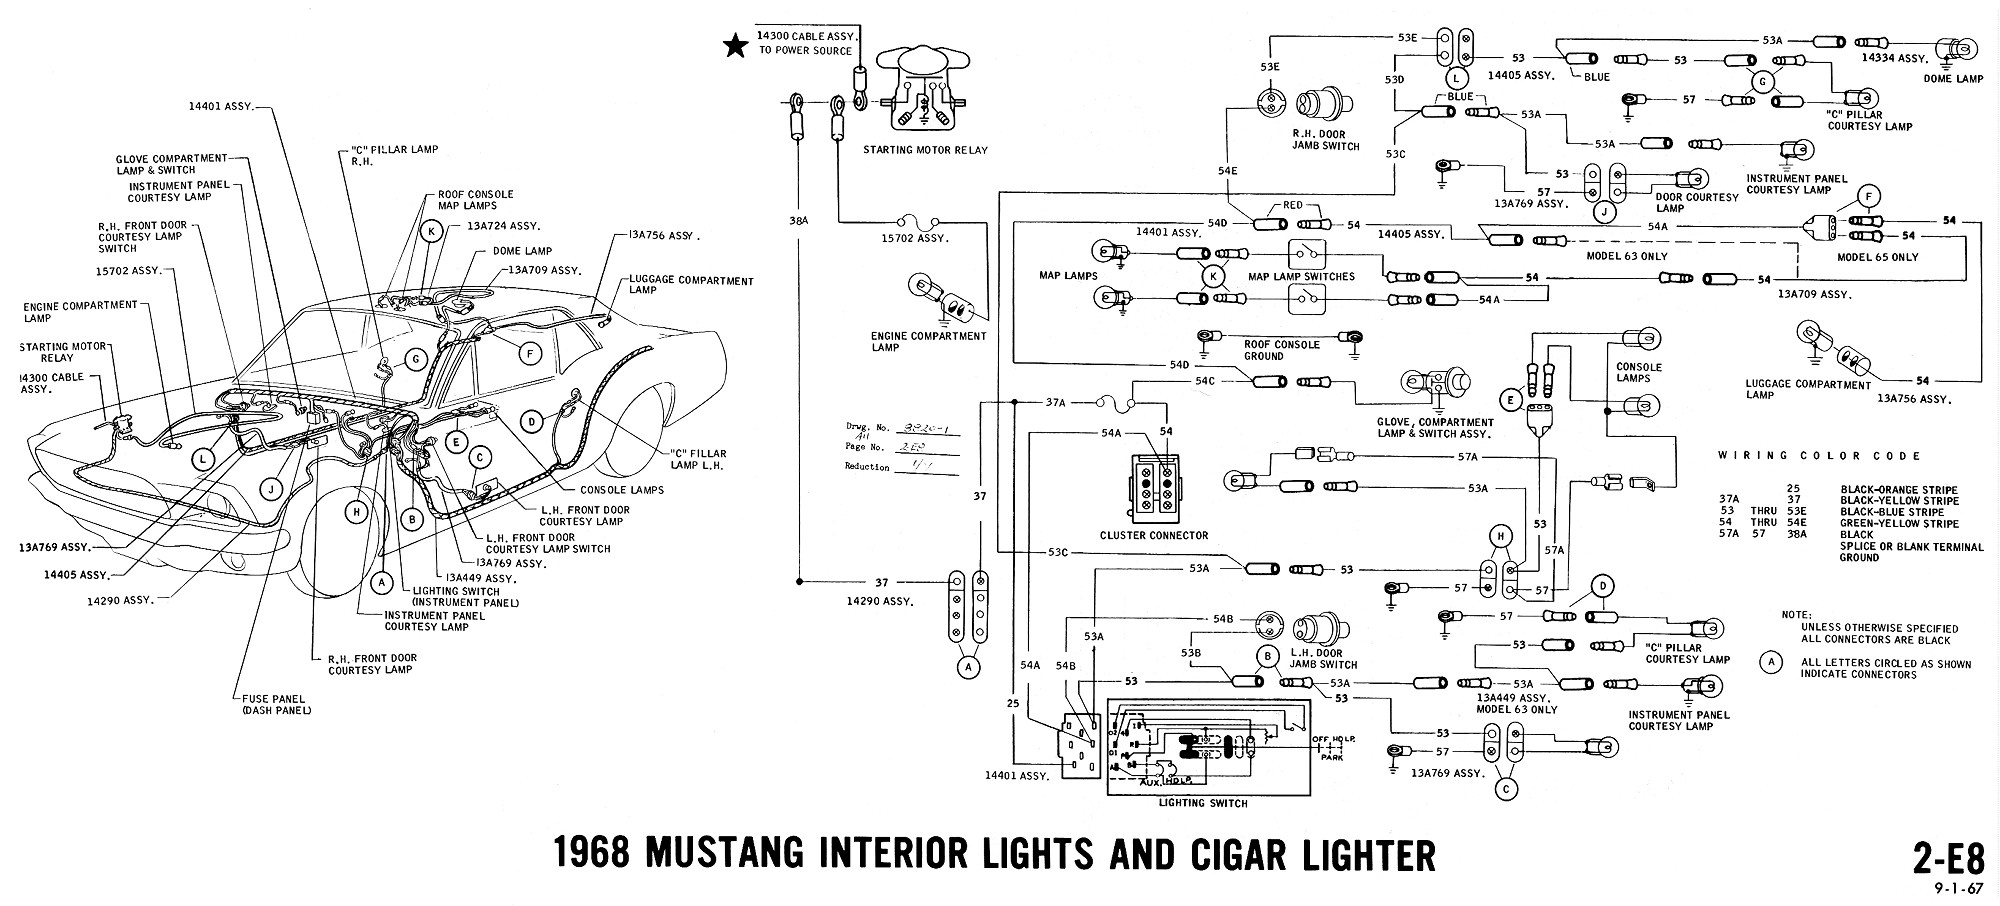 1968 mustang starter relay wiring diagram wiring diagram database